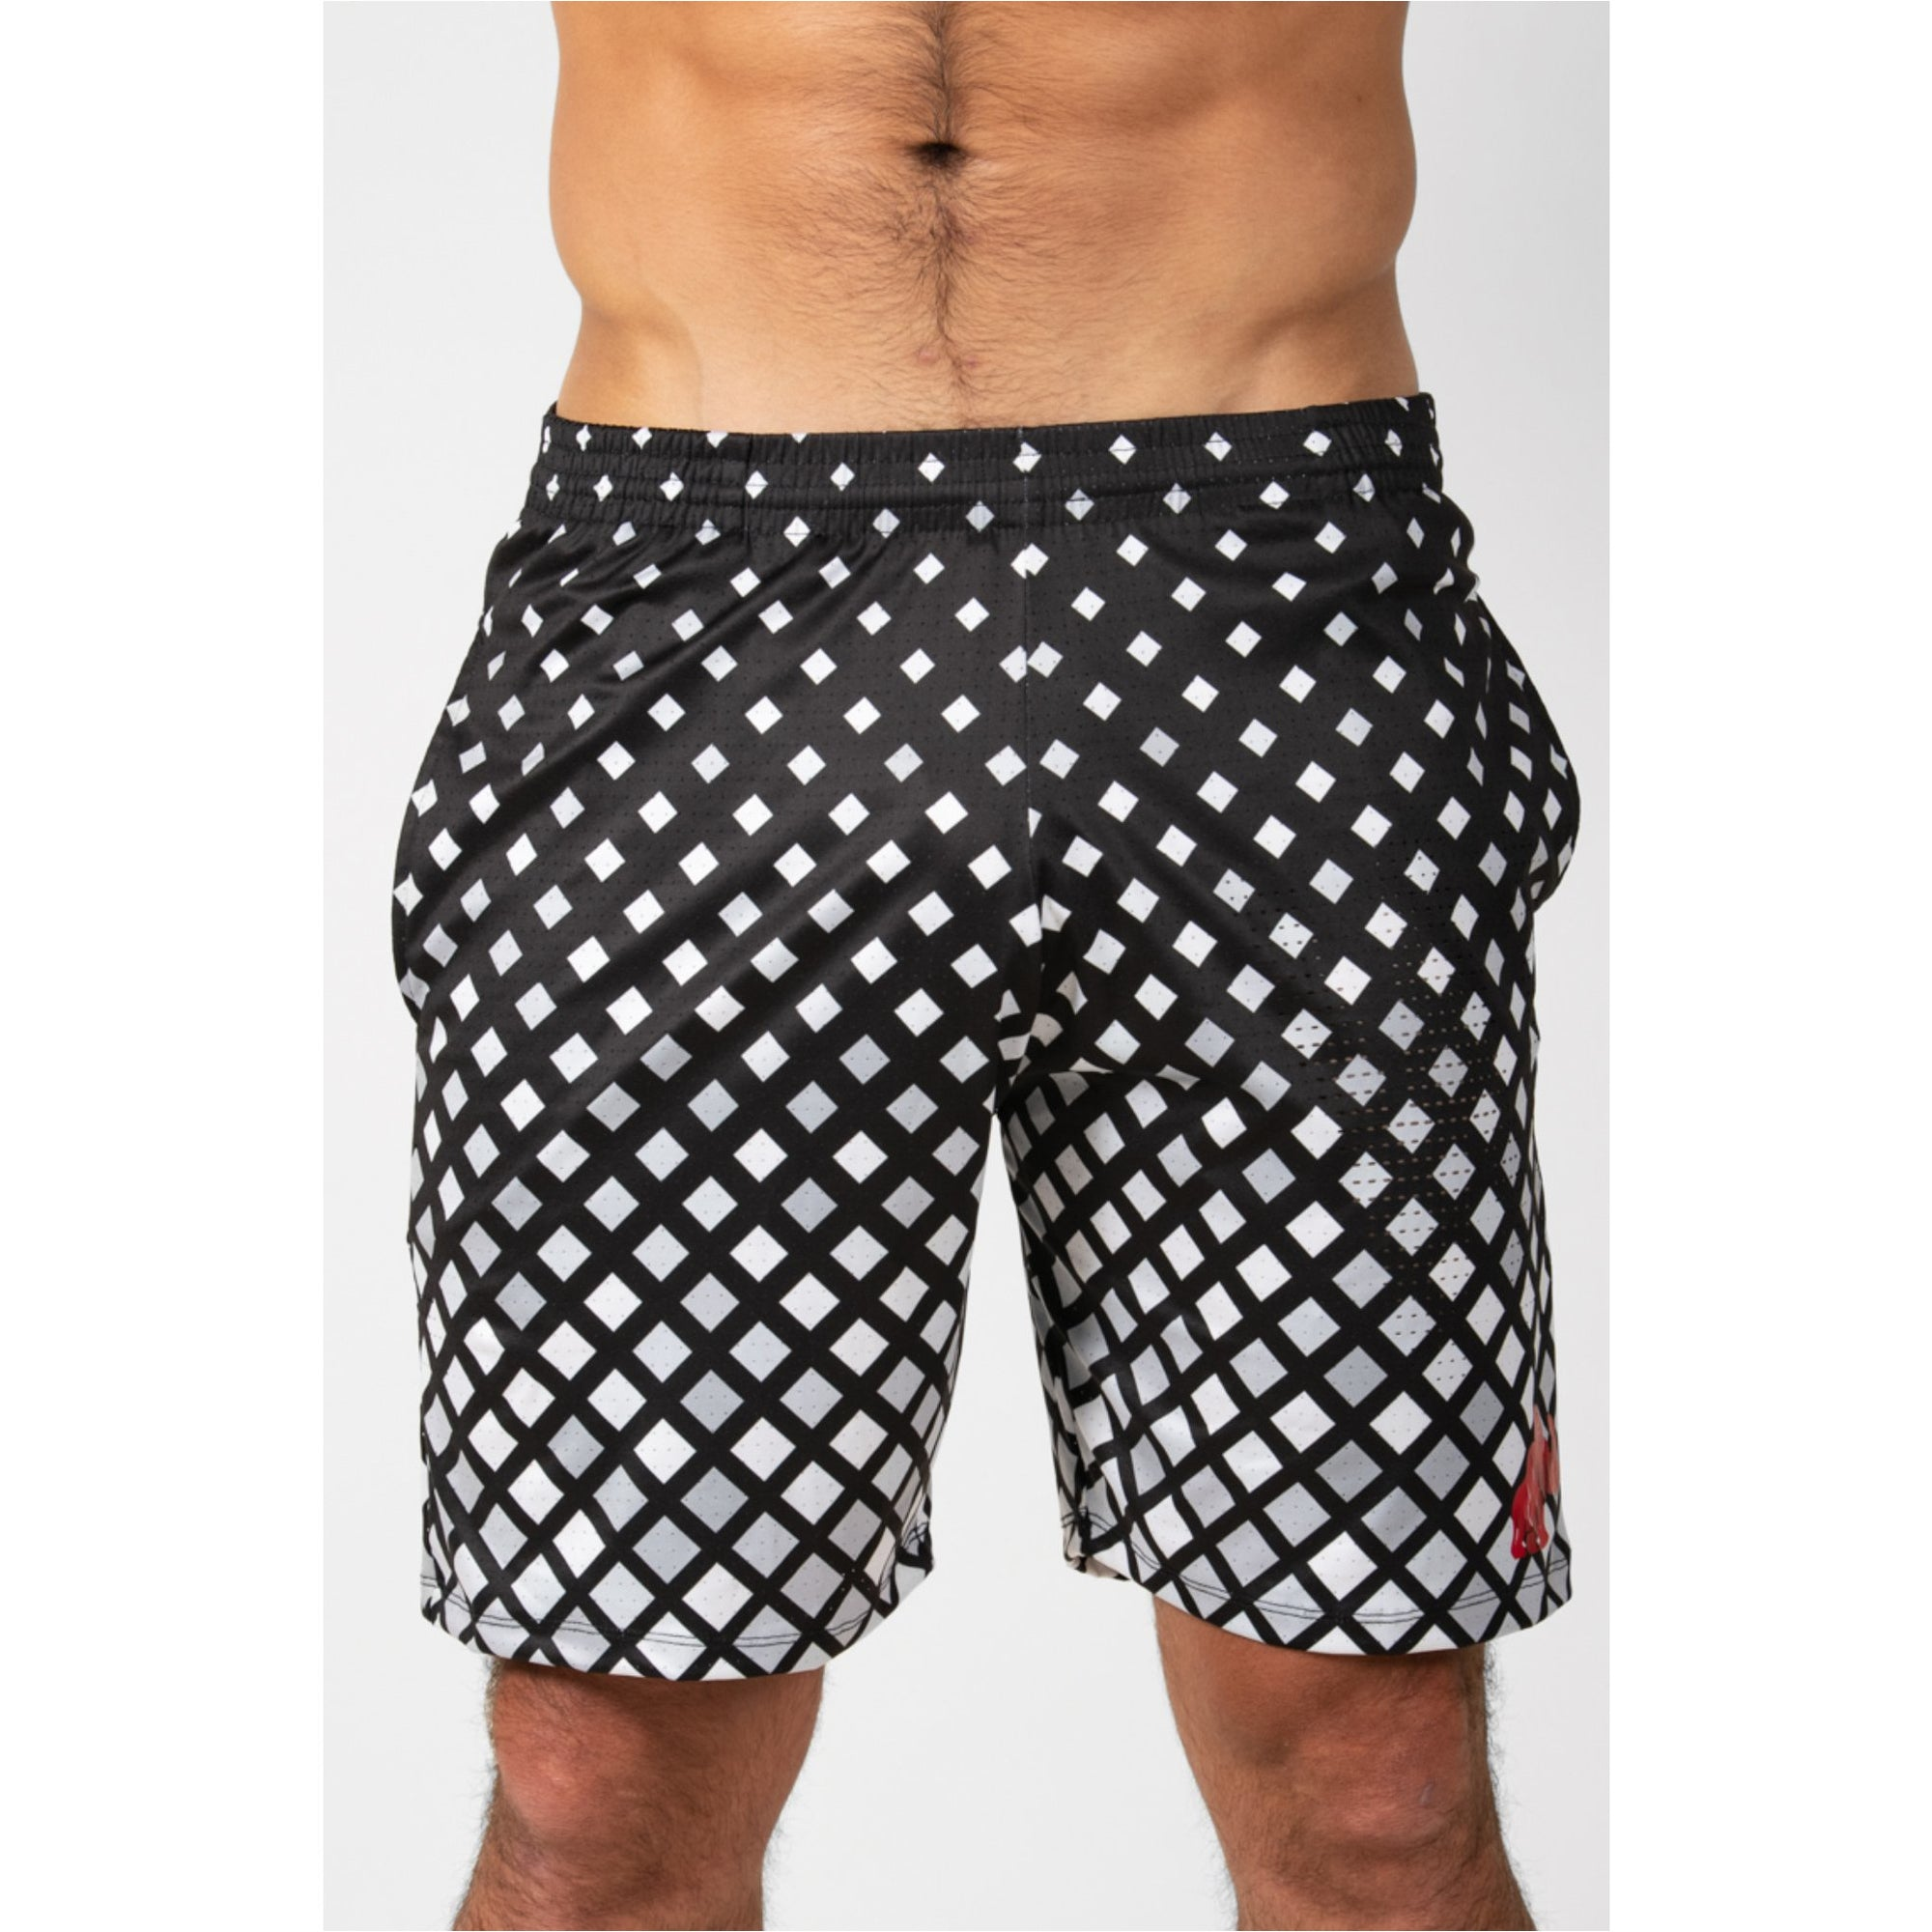 Sports Shorts Pawer Chess Black and White